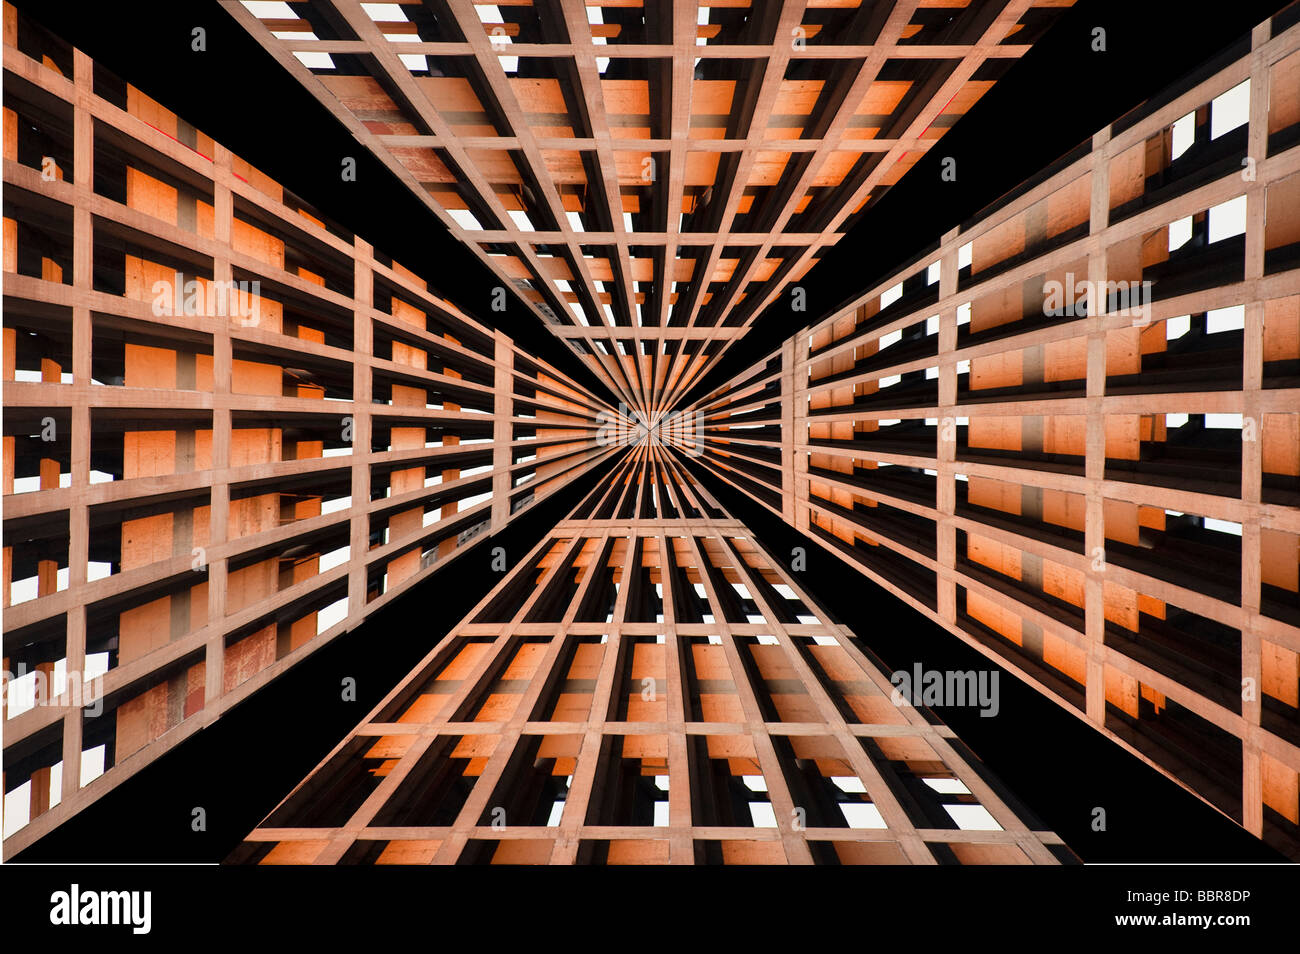 Geometric perspective pattern formed from a closeup image of 'Park Hill Flats' when under redevelopment, - Stock Image